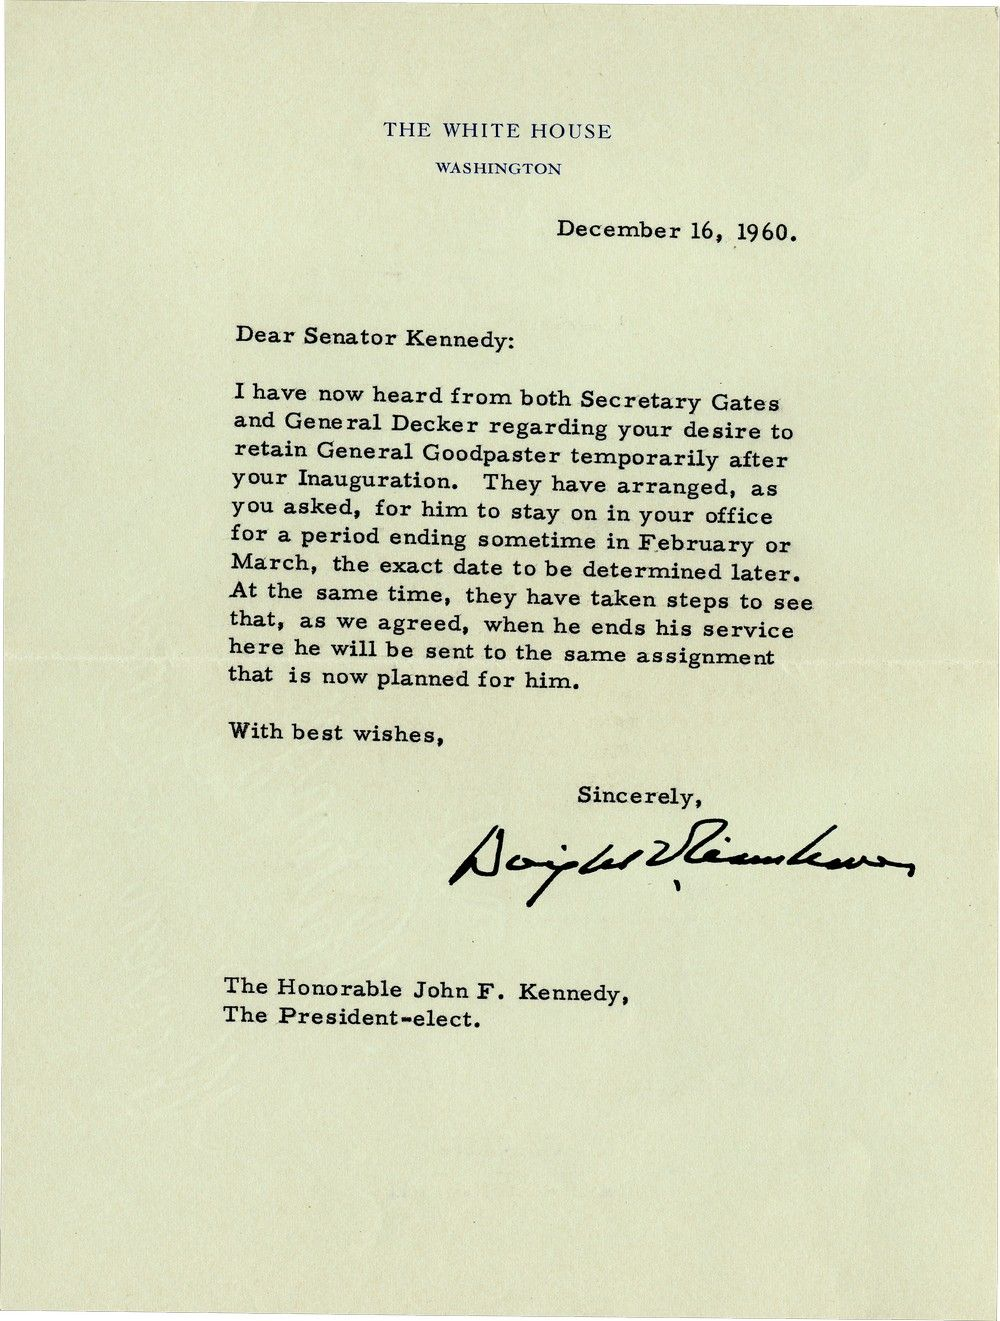 President Eisenhower Writes JFK a Chilly Letter After Losing the 1960 Election